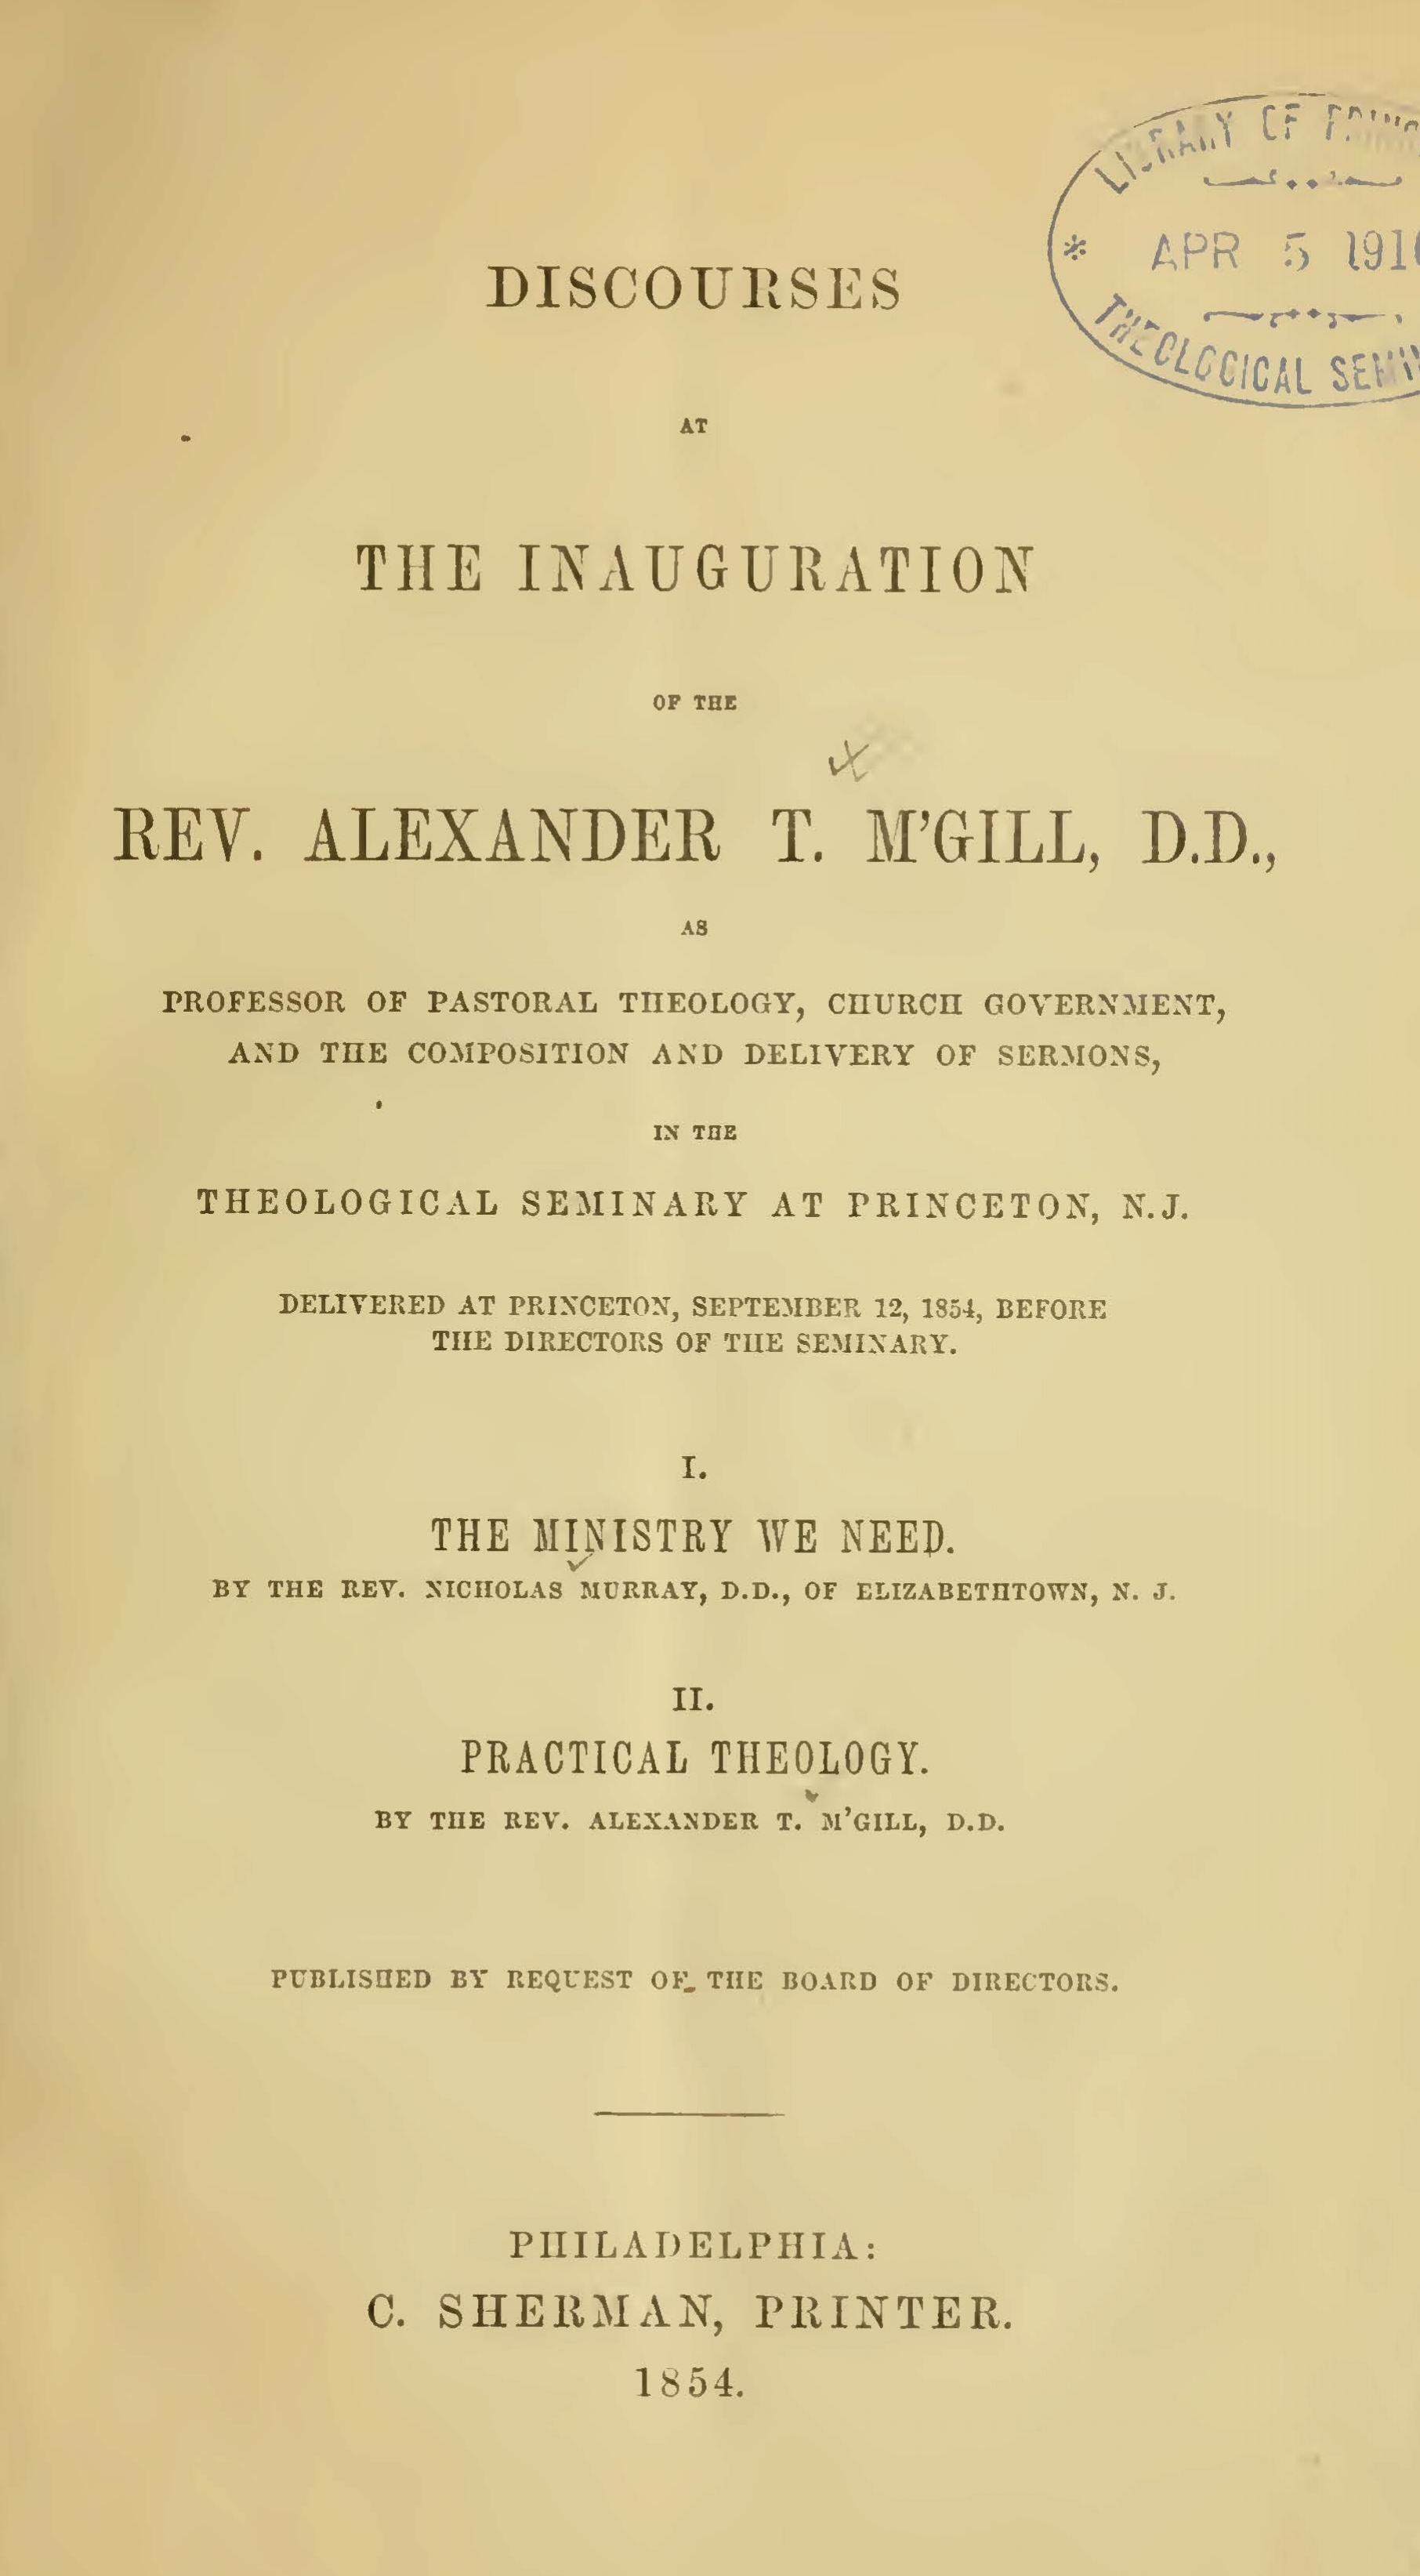 McGill, Alexander Taggart, Discourses at the Inauguration of the Rev. Alexander T. M'Gill, D.D. Title Page.jpg